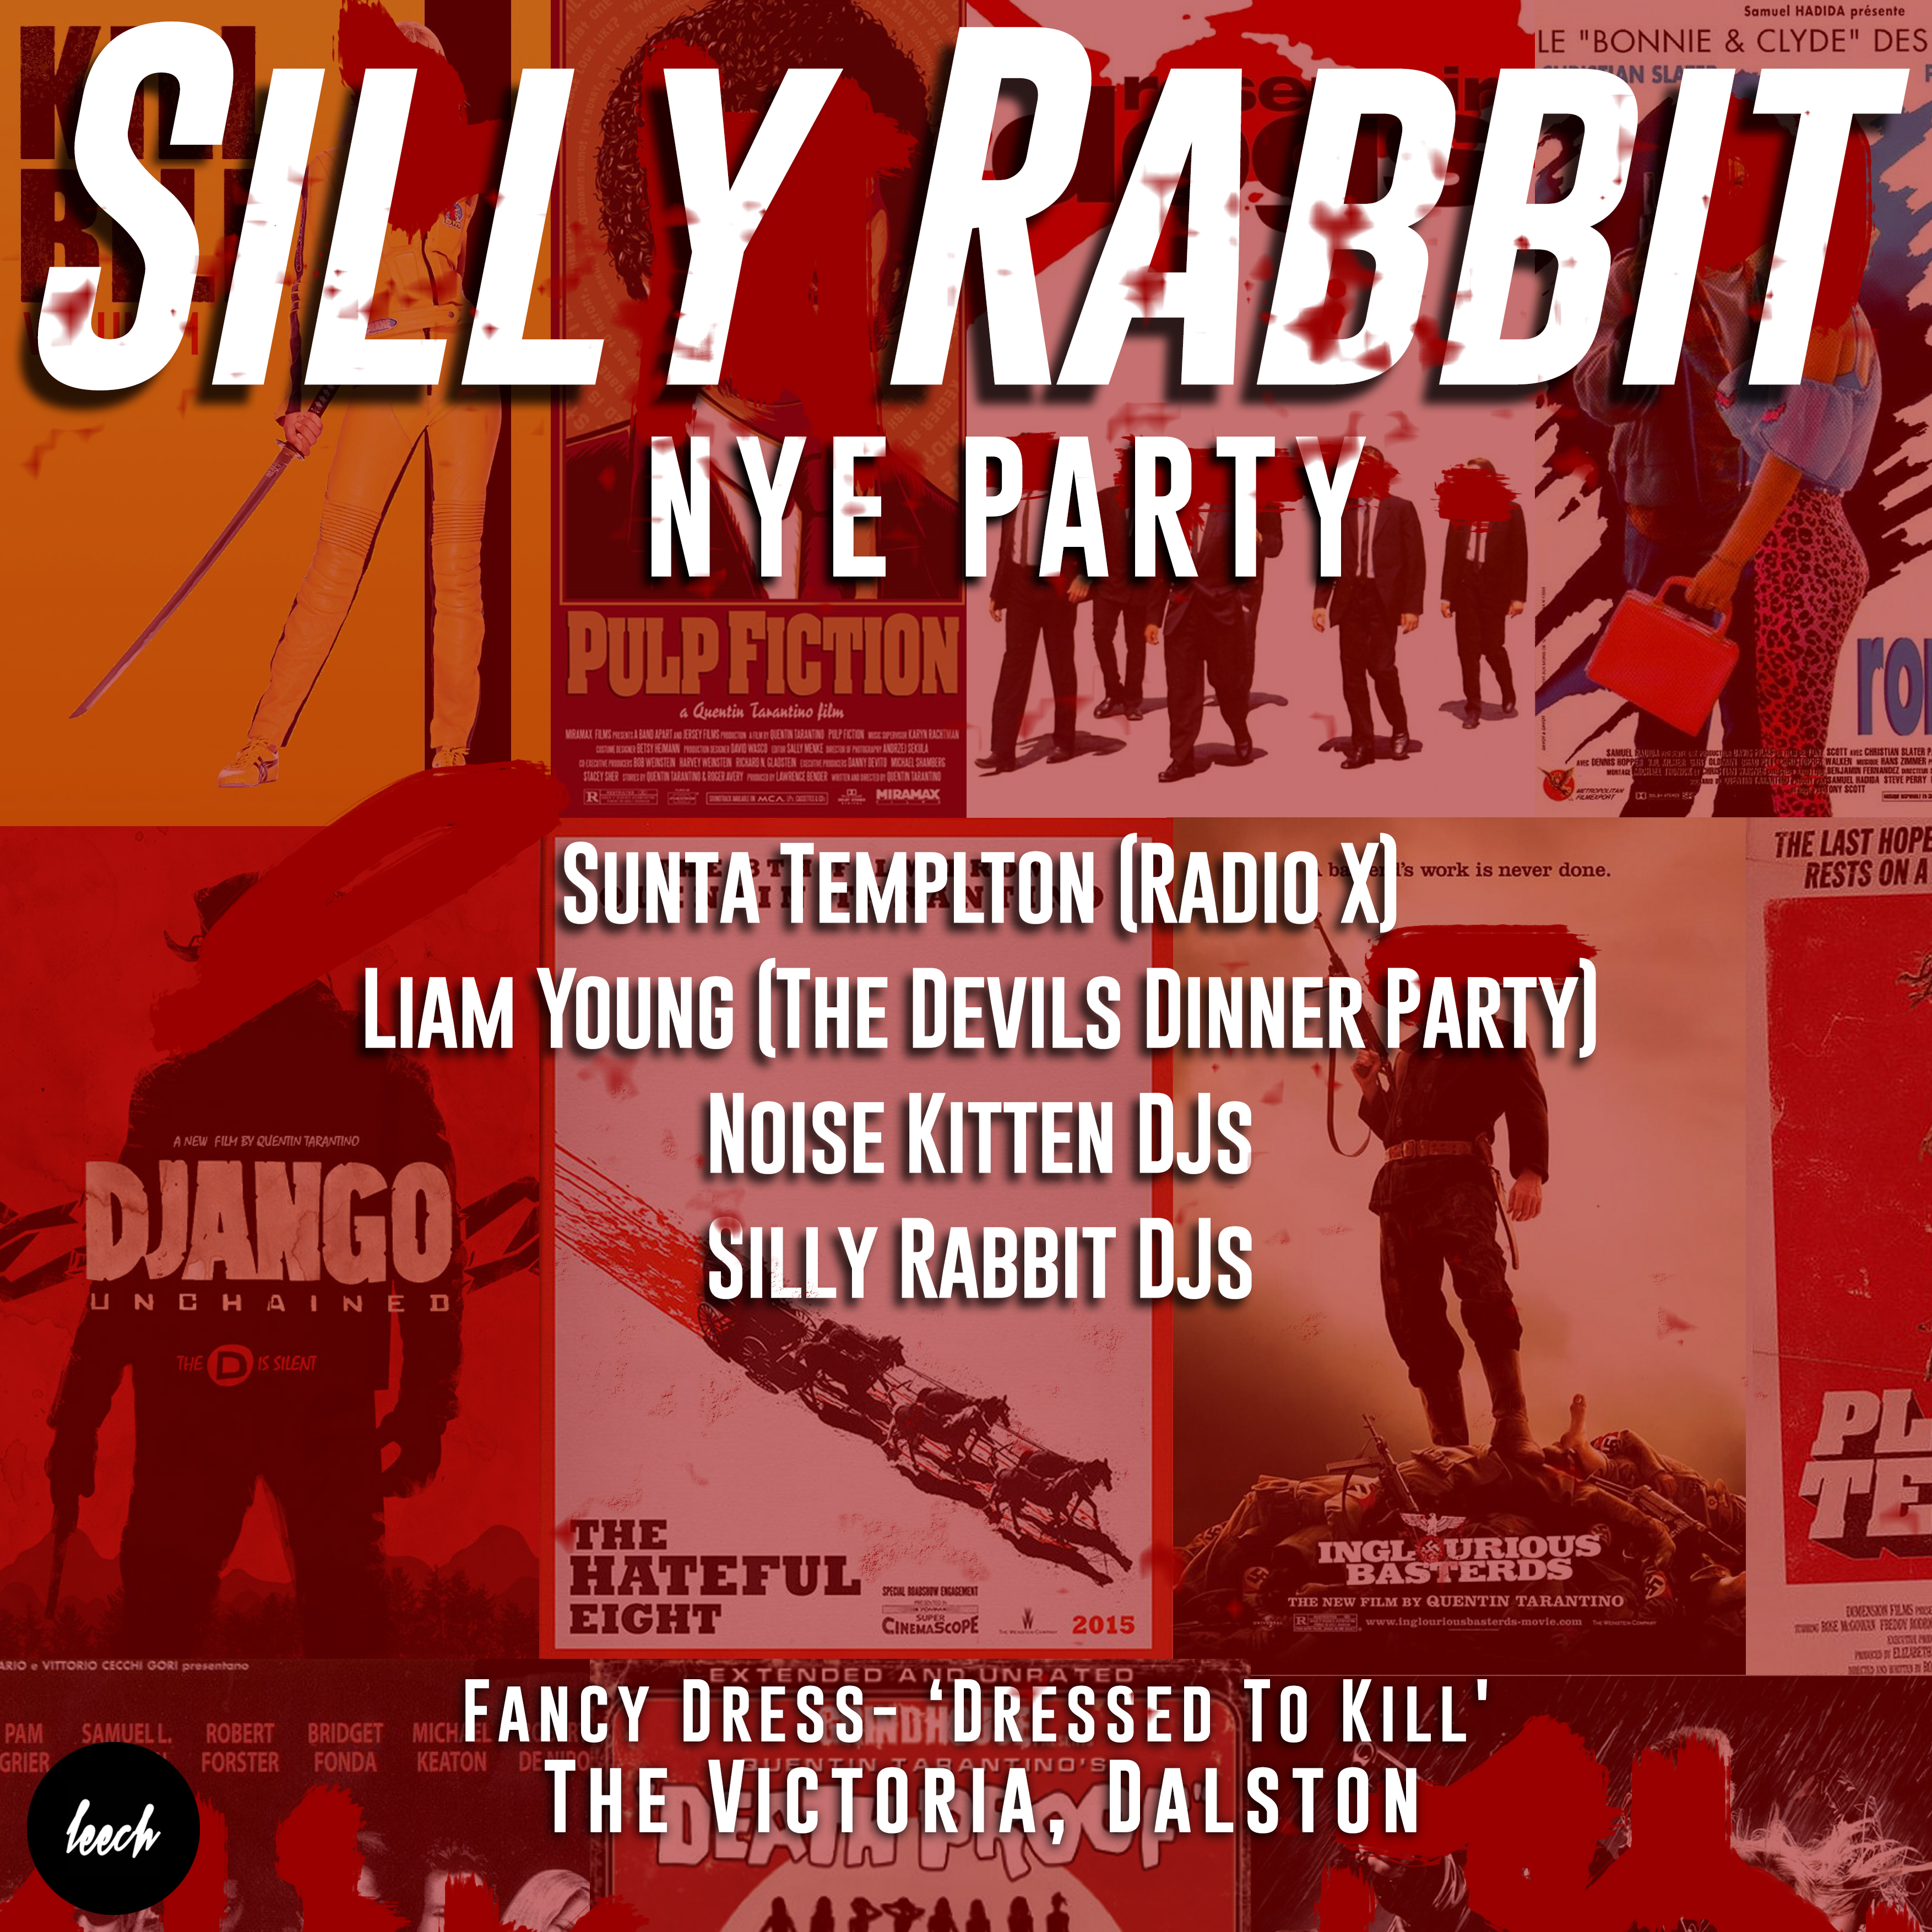 Silly Rabbit: New Years Eve Party (Quentin Tarantino Theme)